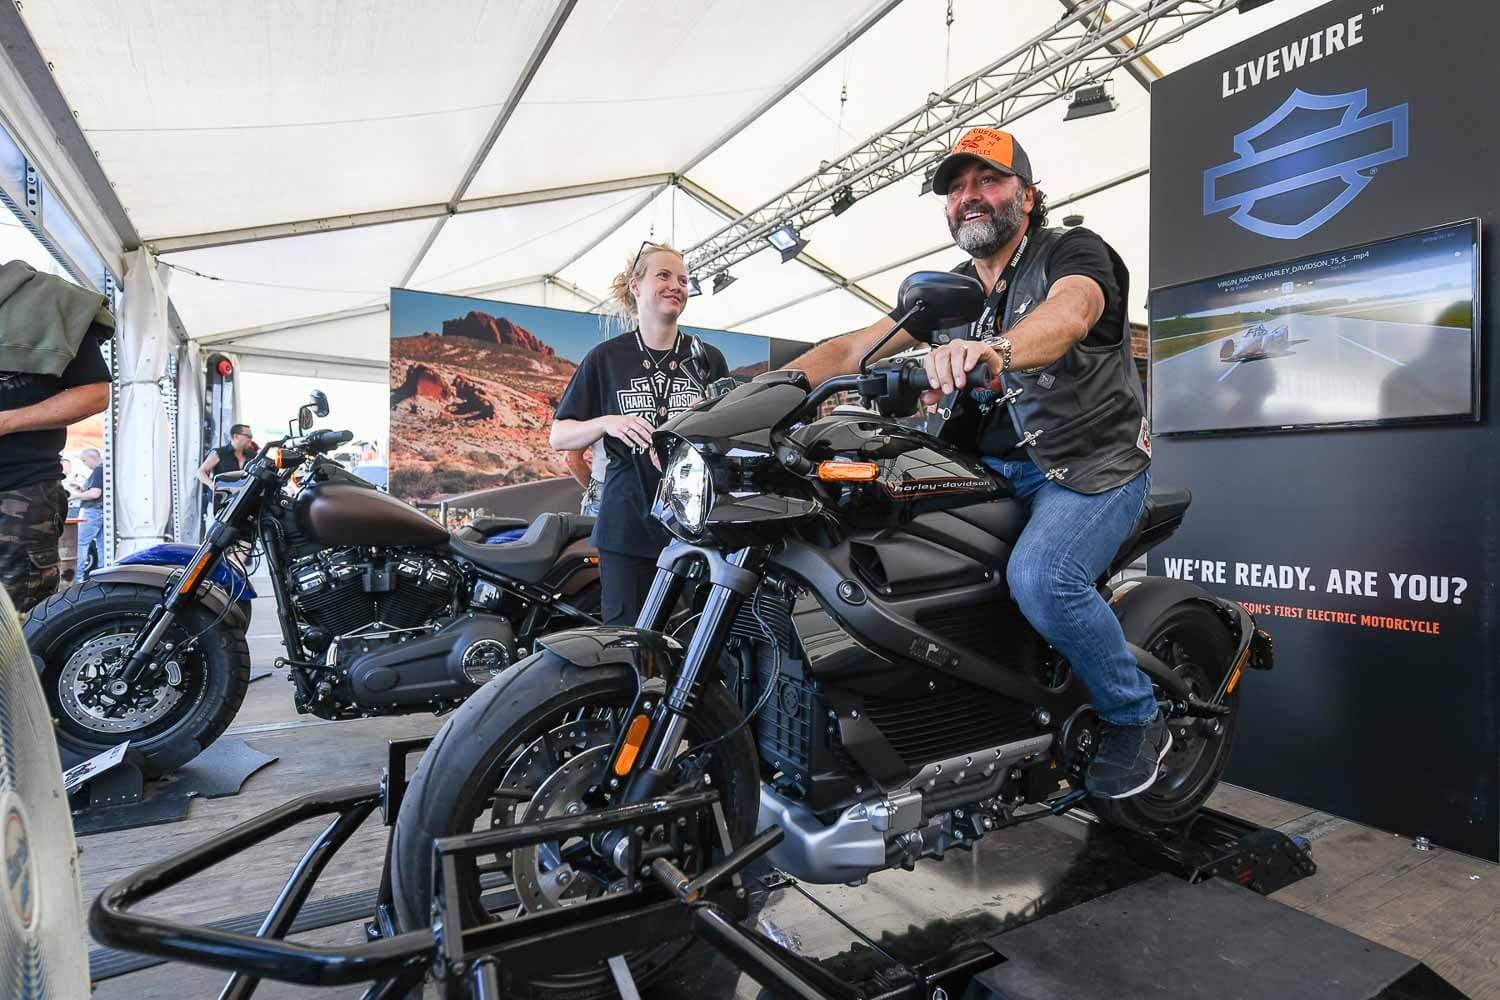 Hamburg Harley Days 2019